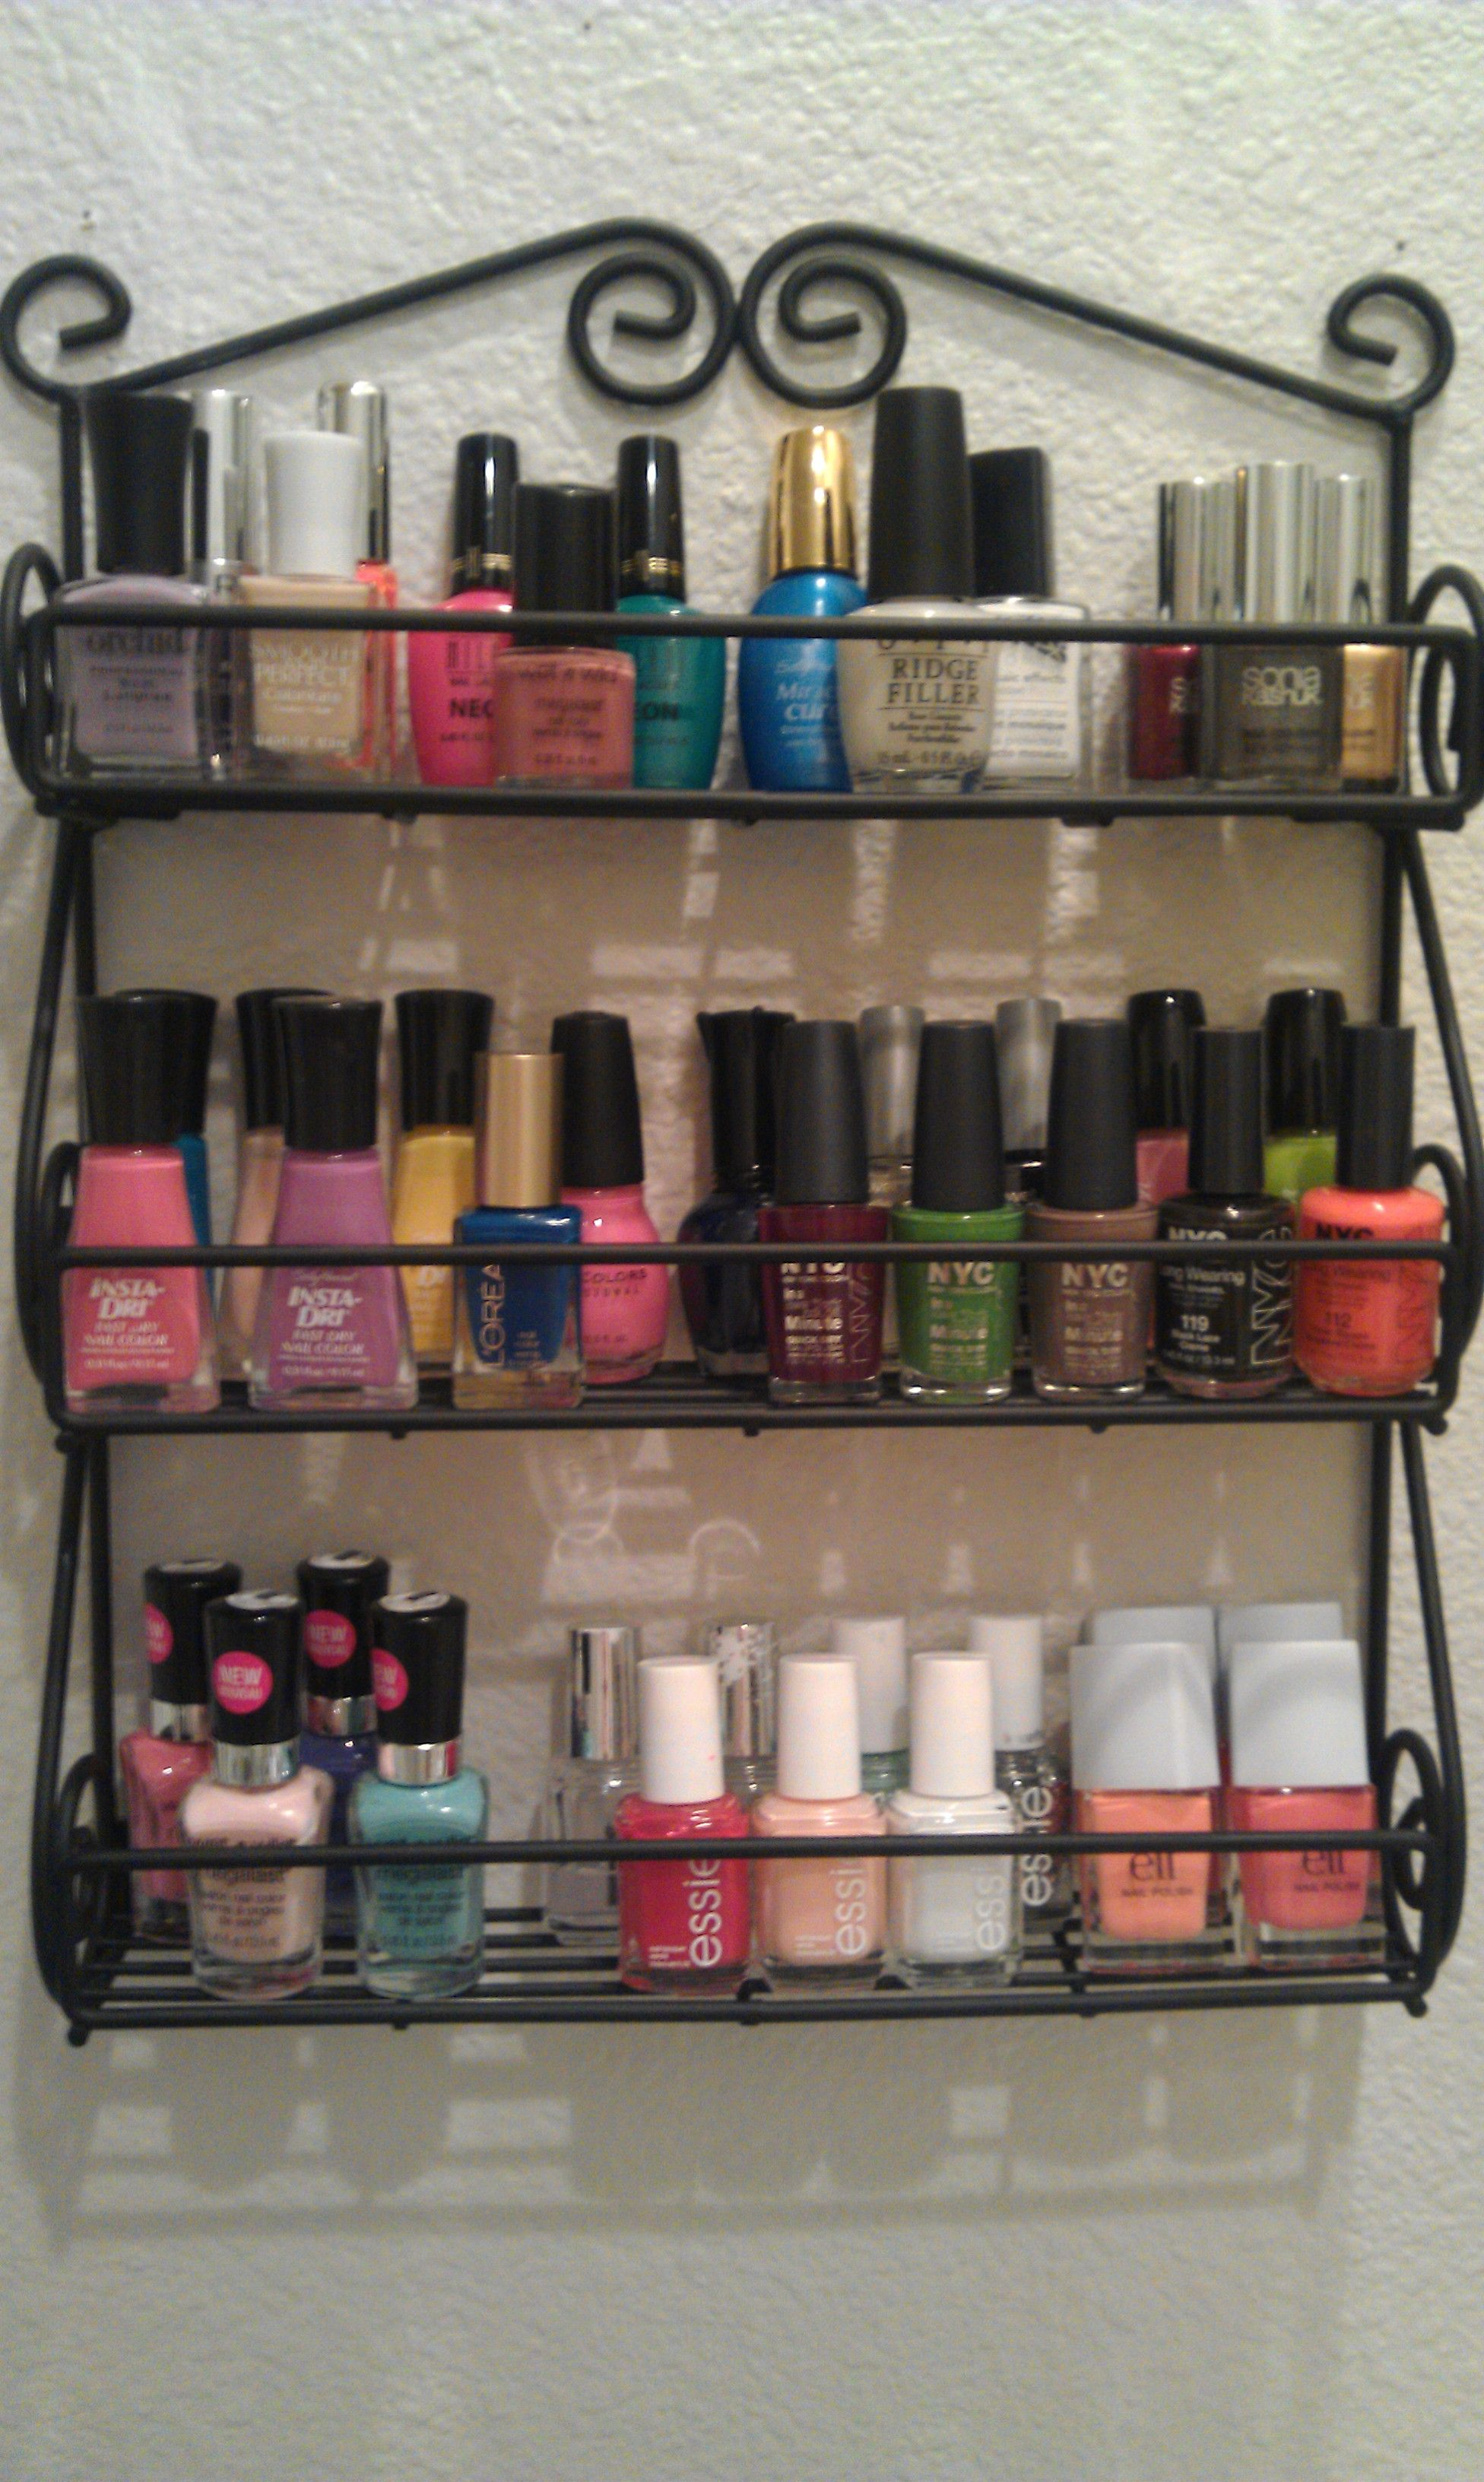 Spice rack for polishesi rebuy so many colors because i cant find spice rack for storing nail polishes inside of the bathroom cabinet door find this pin and more on do it yourself solutioingenieria Images